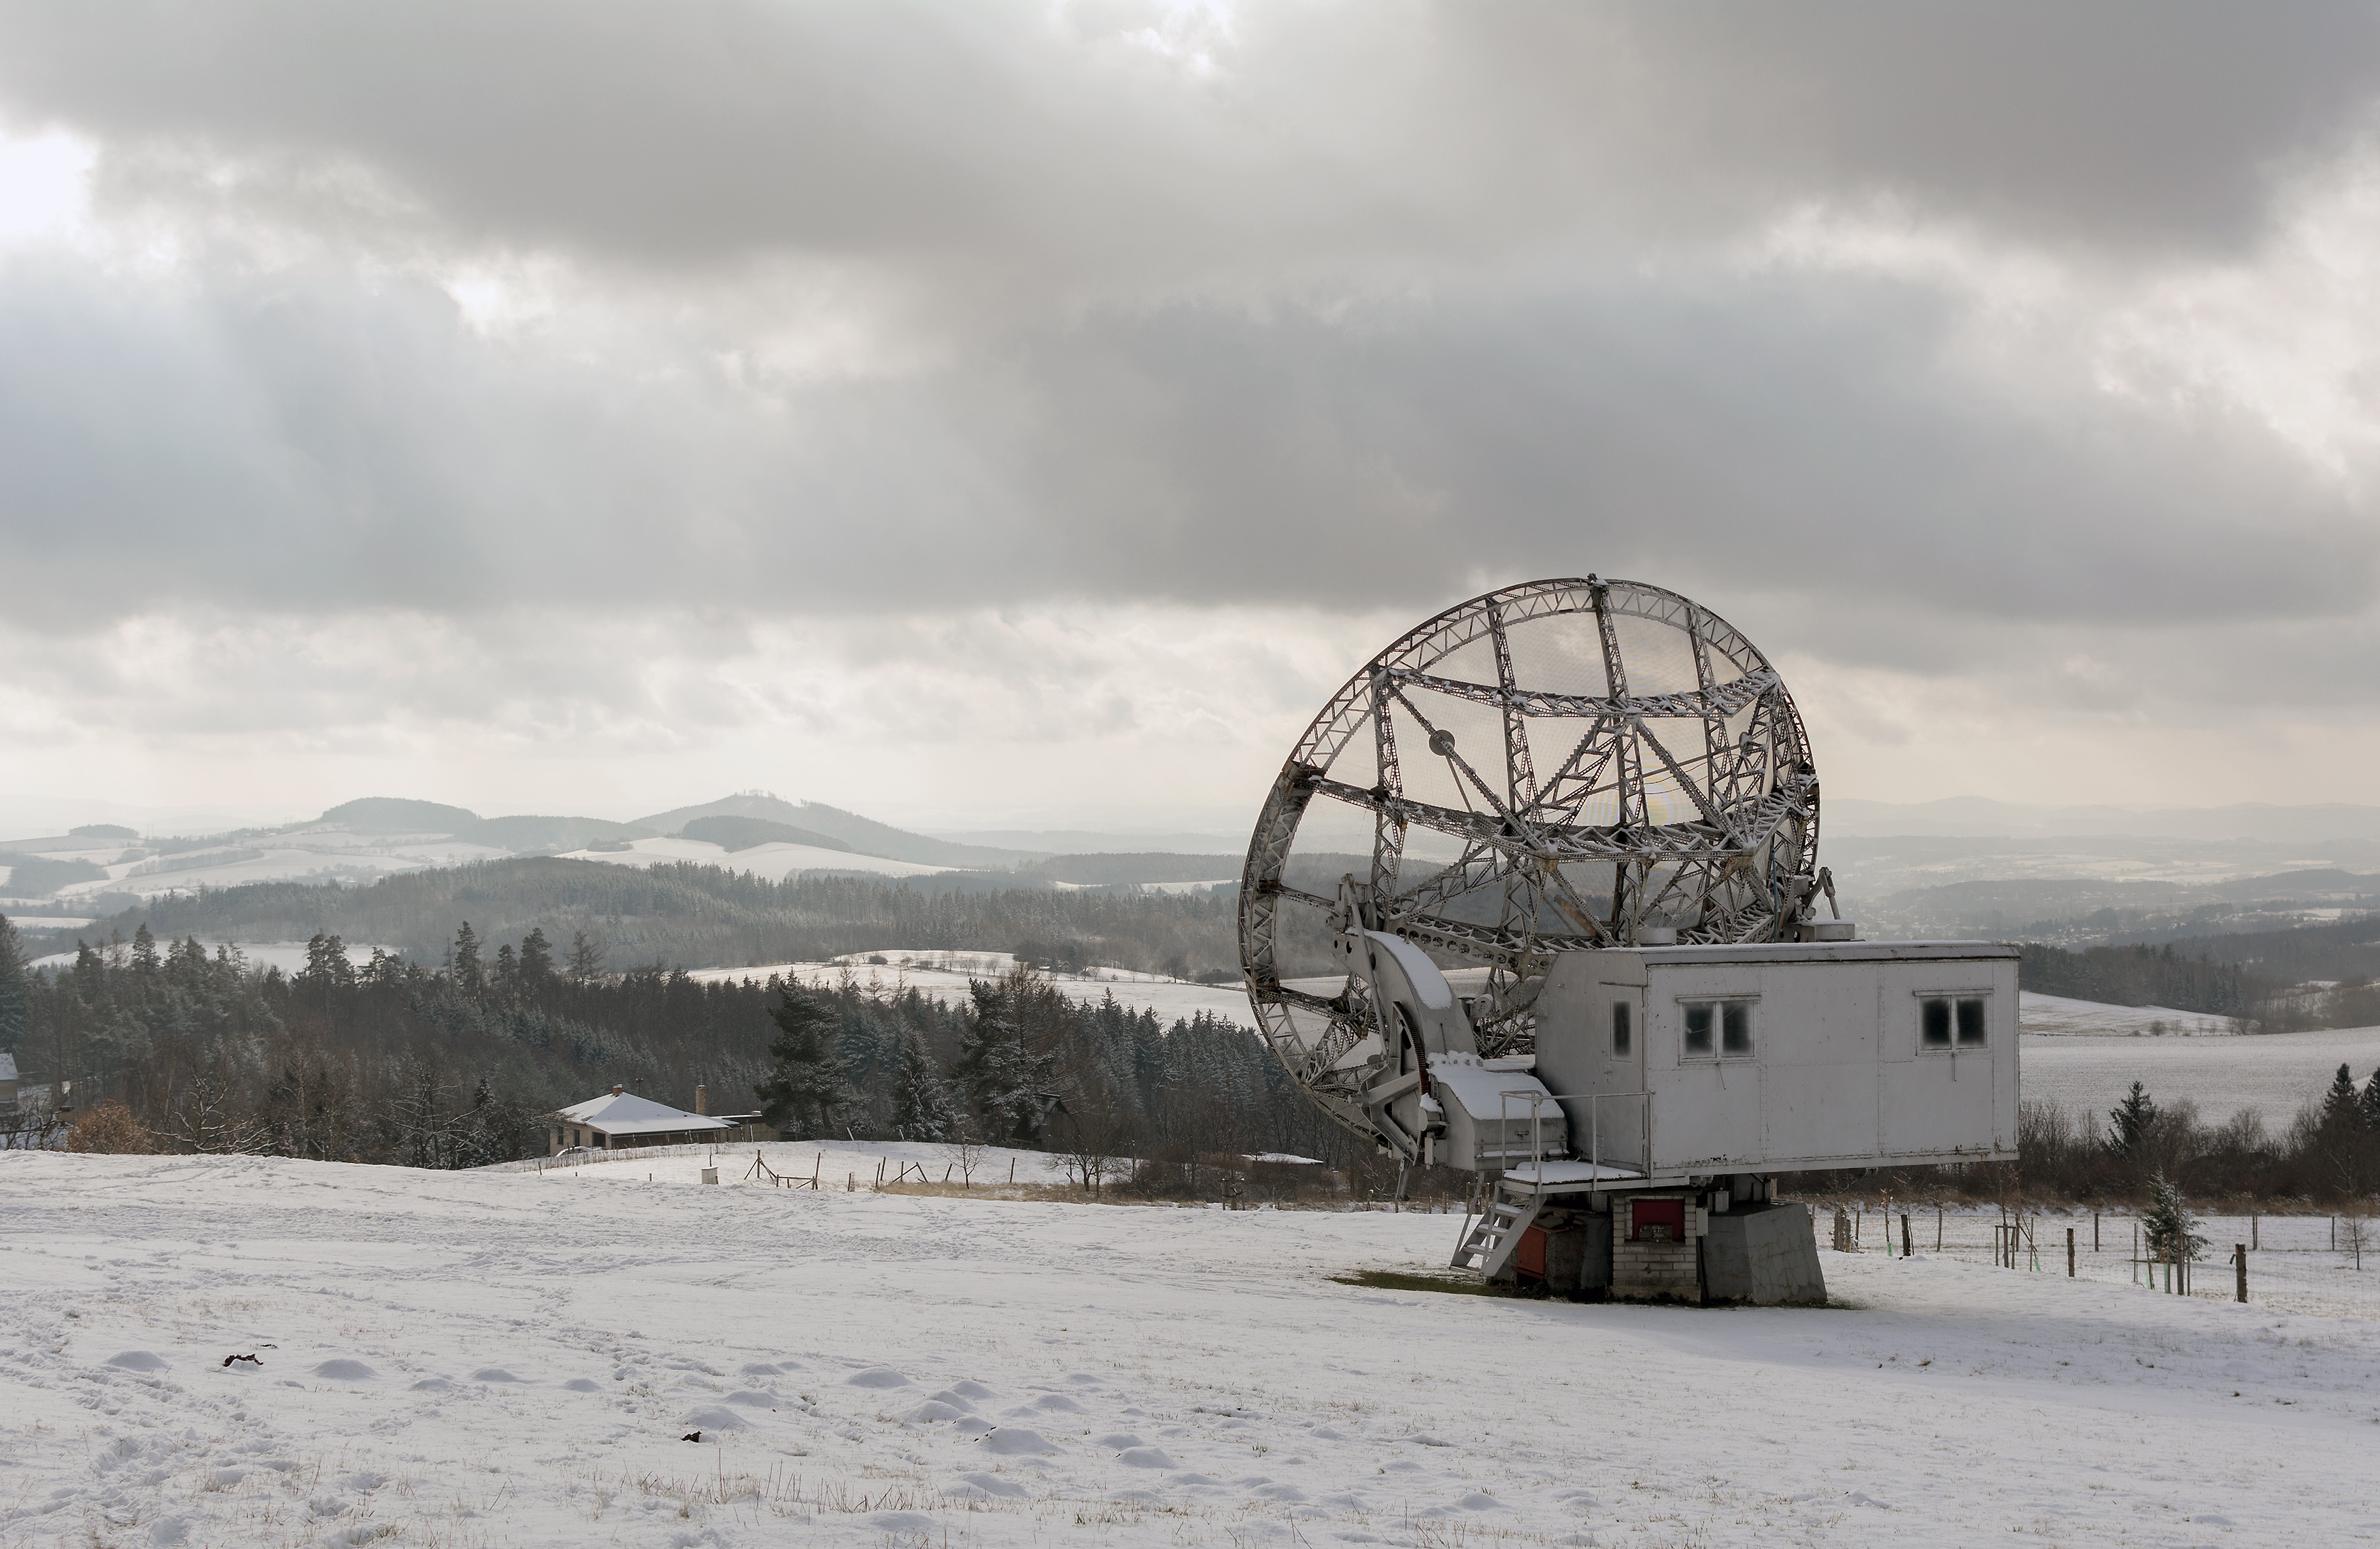 Snowy scene with a parabolic antenna